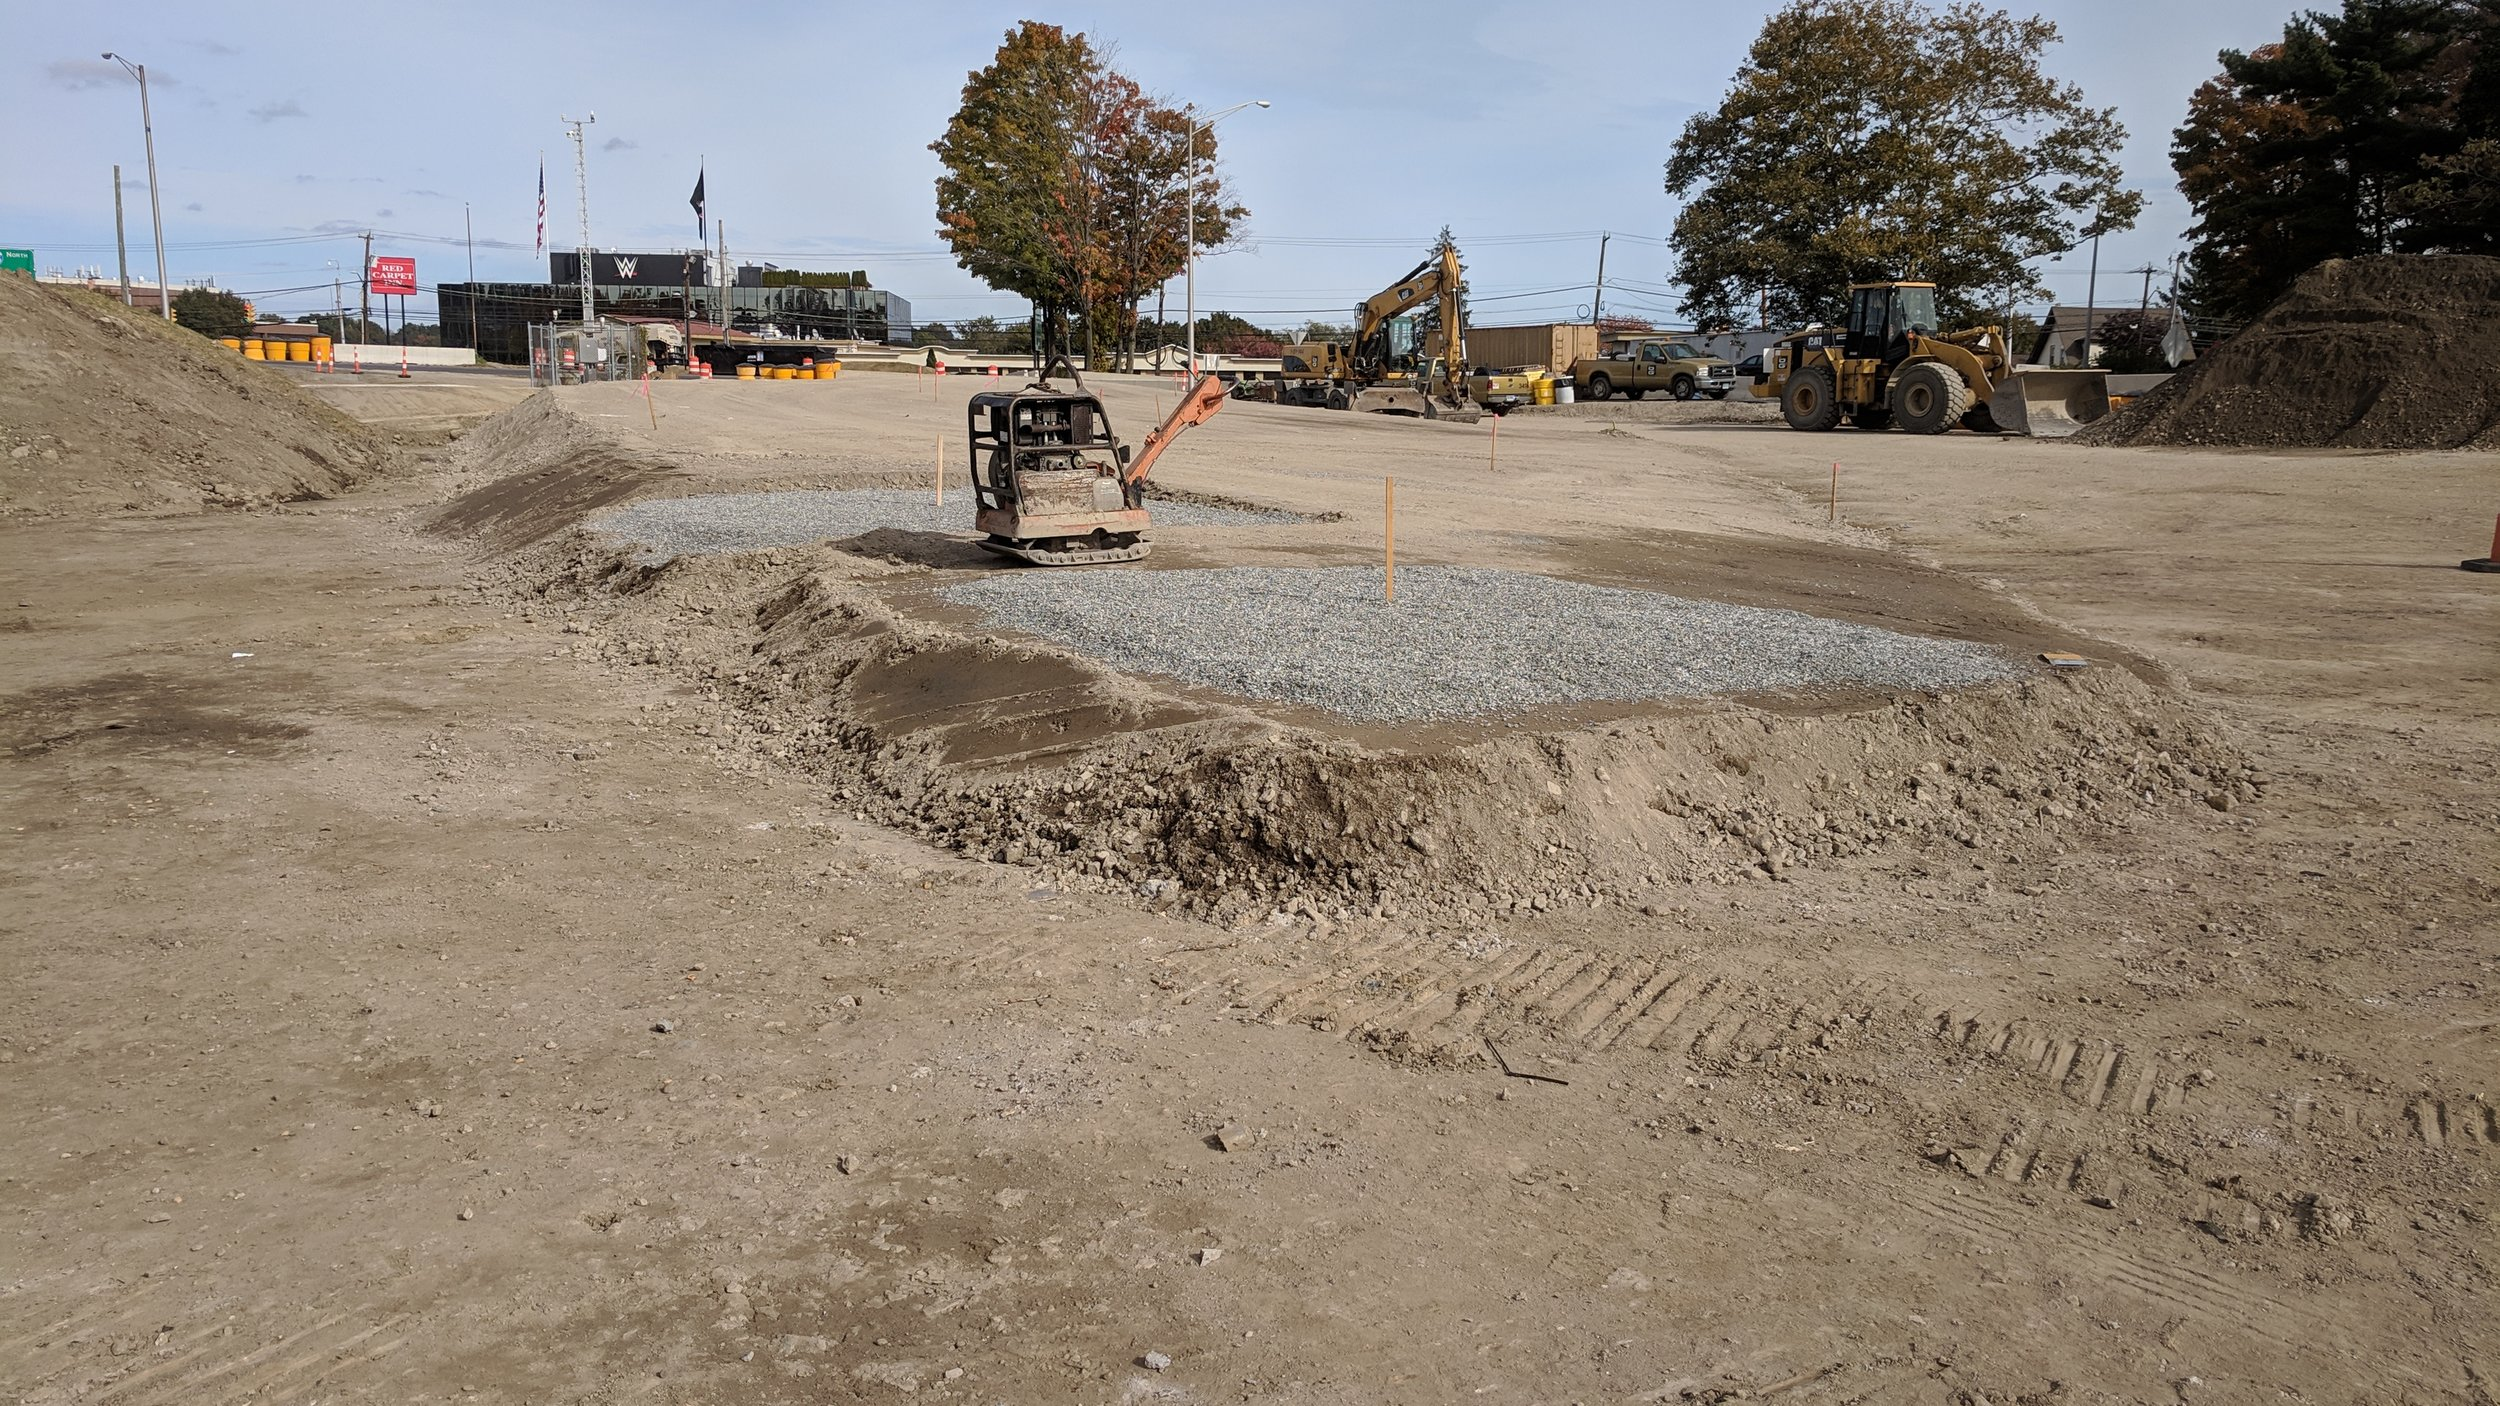 Infield area being prepared for the assembly of the temporary support system for Span 1.  Taken on 10/26/2018 by Jonathan Wu